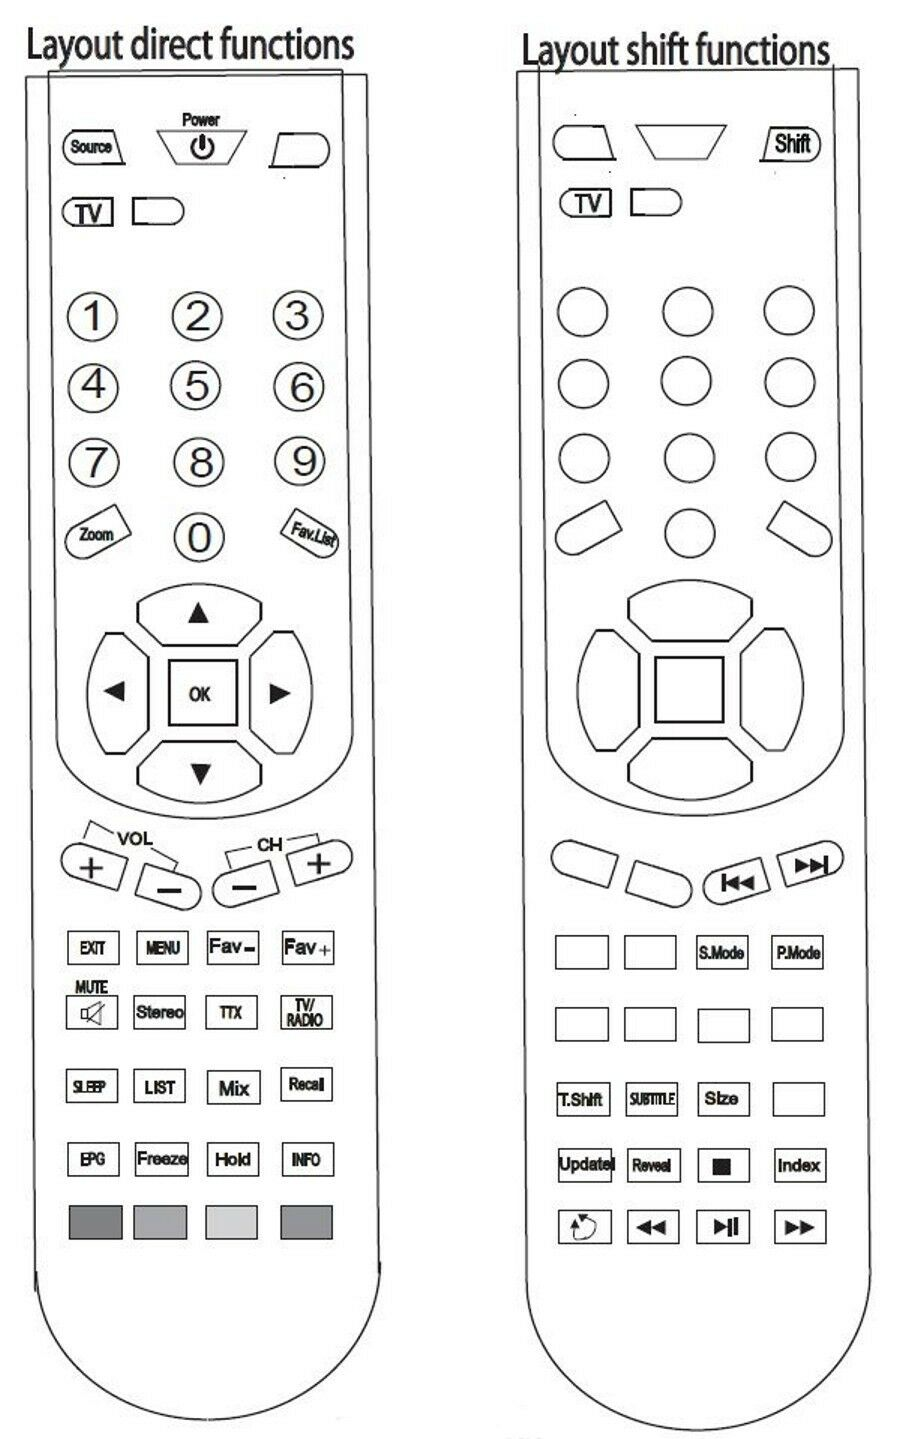 Rc-S071 Rcs071 Remote Control For Sanyo Tv Also Suits Rc-S076, Rcs076,  Rc-J17oa